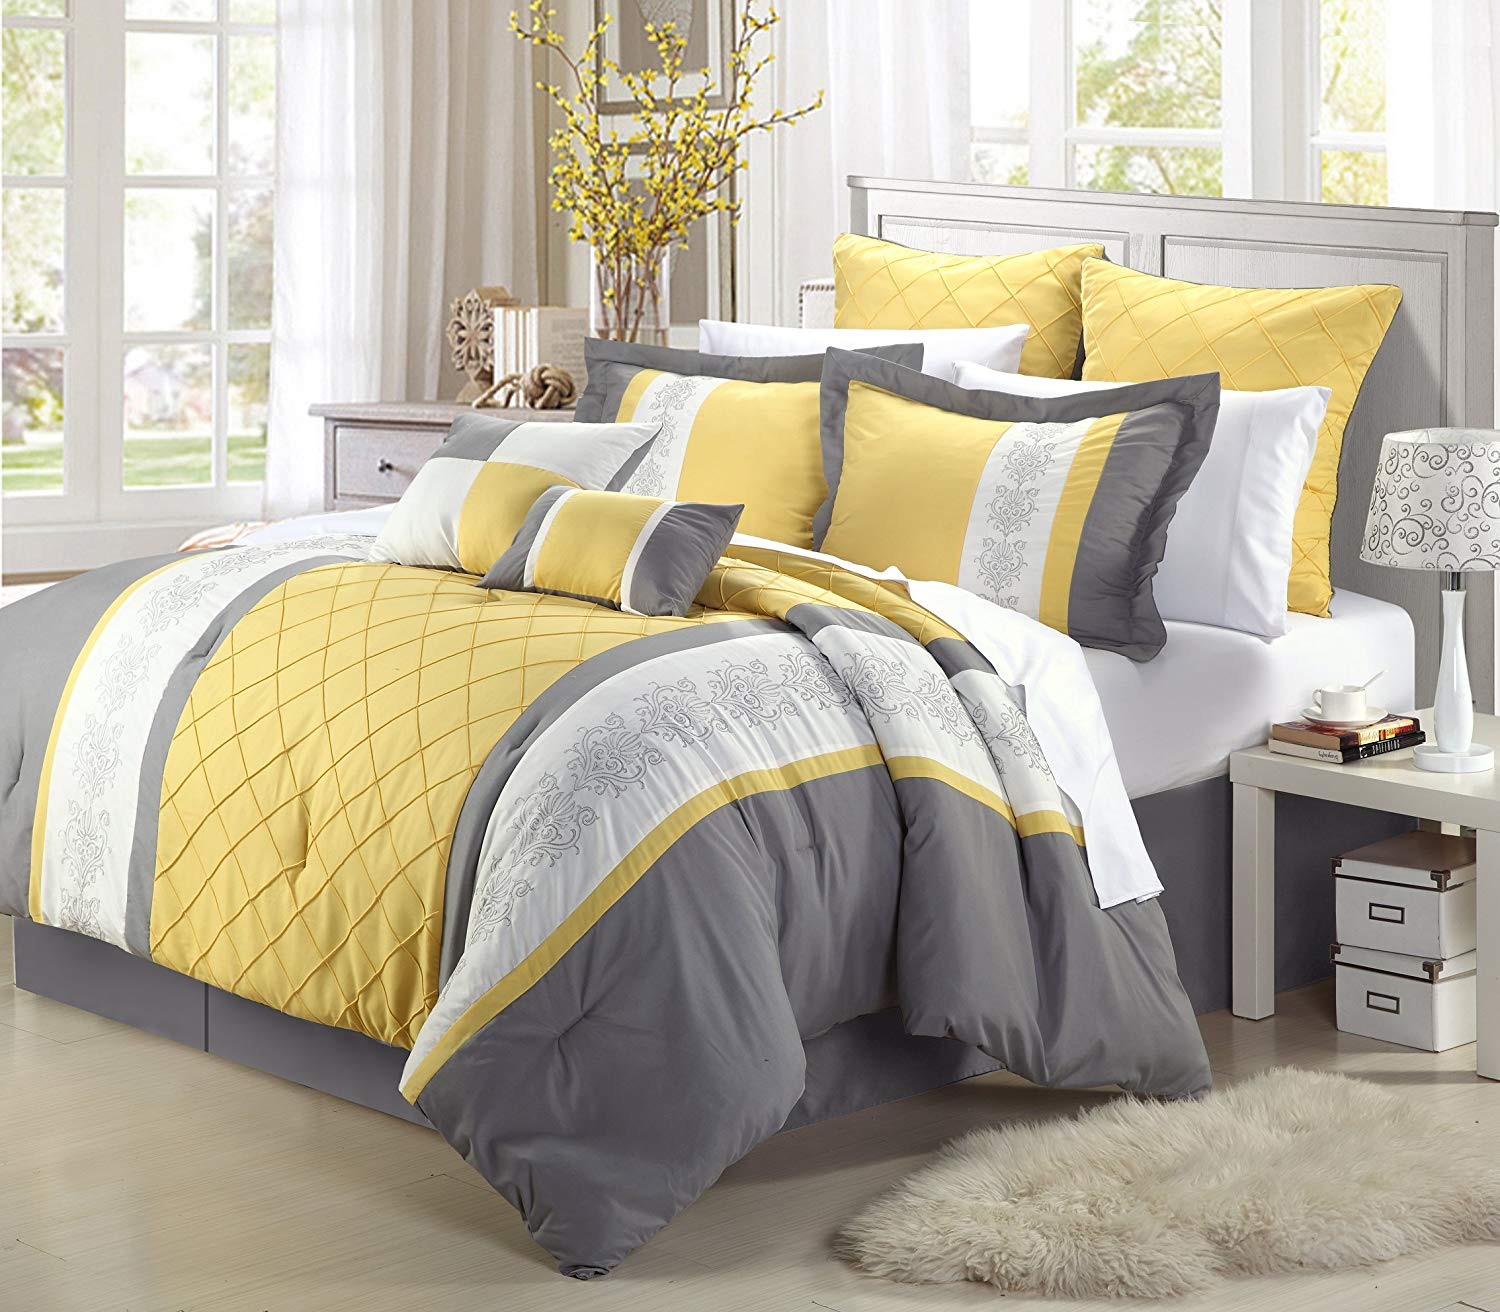 Cheap Grey And Yellow Decorative Pillows Find Grey And Yellow